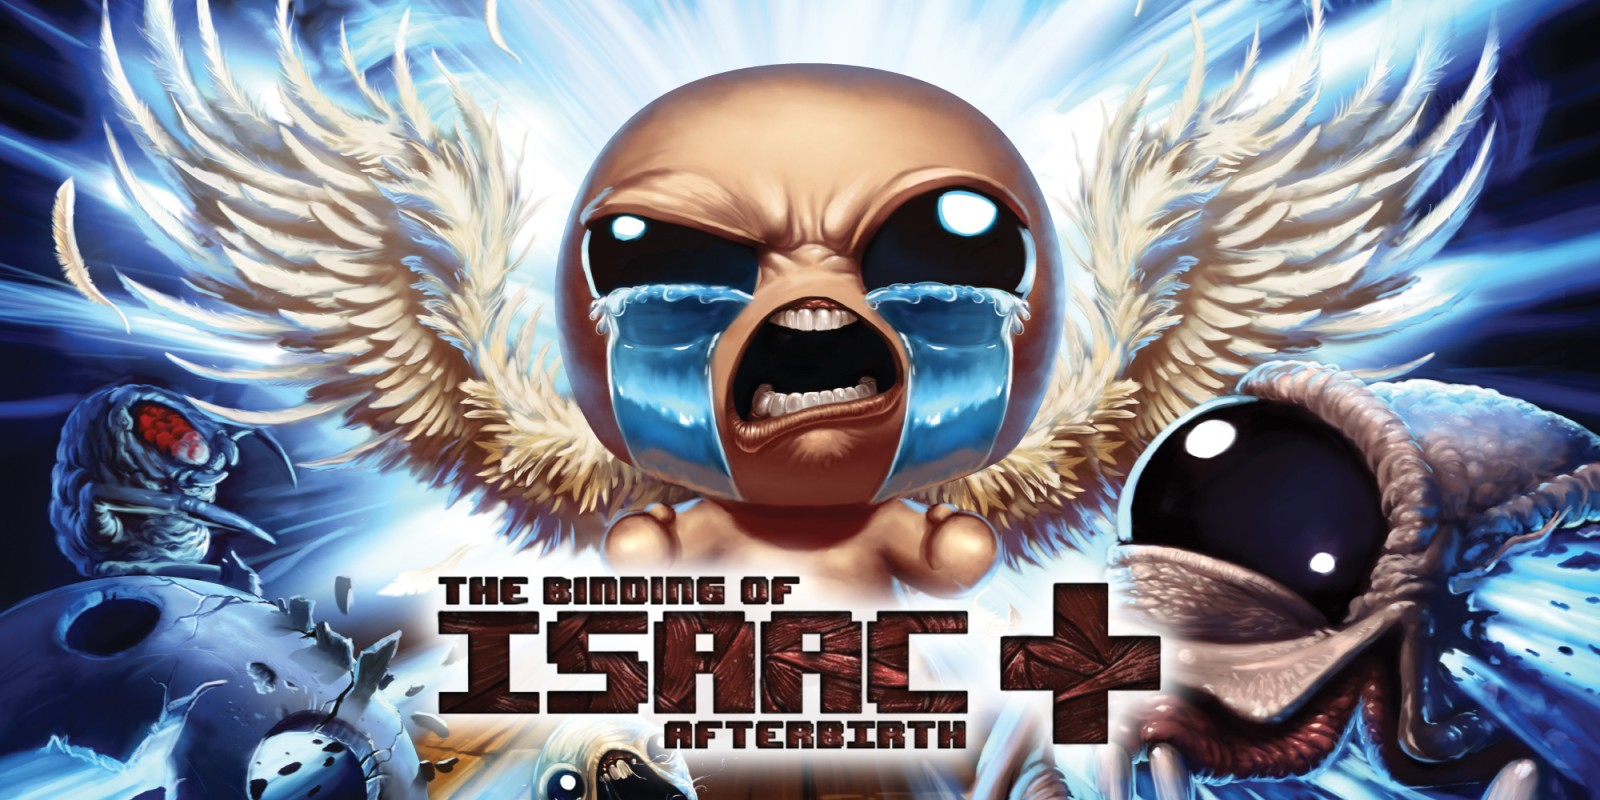 Super Metroid Hd Wallpaper The Binding Of Isaac Afterbirth Nintendo Switch Игры